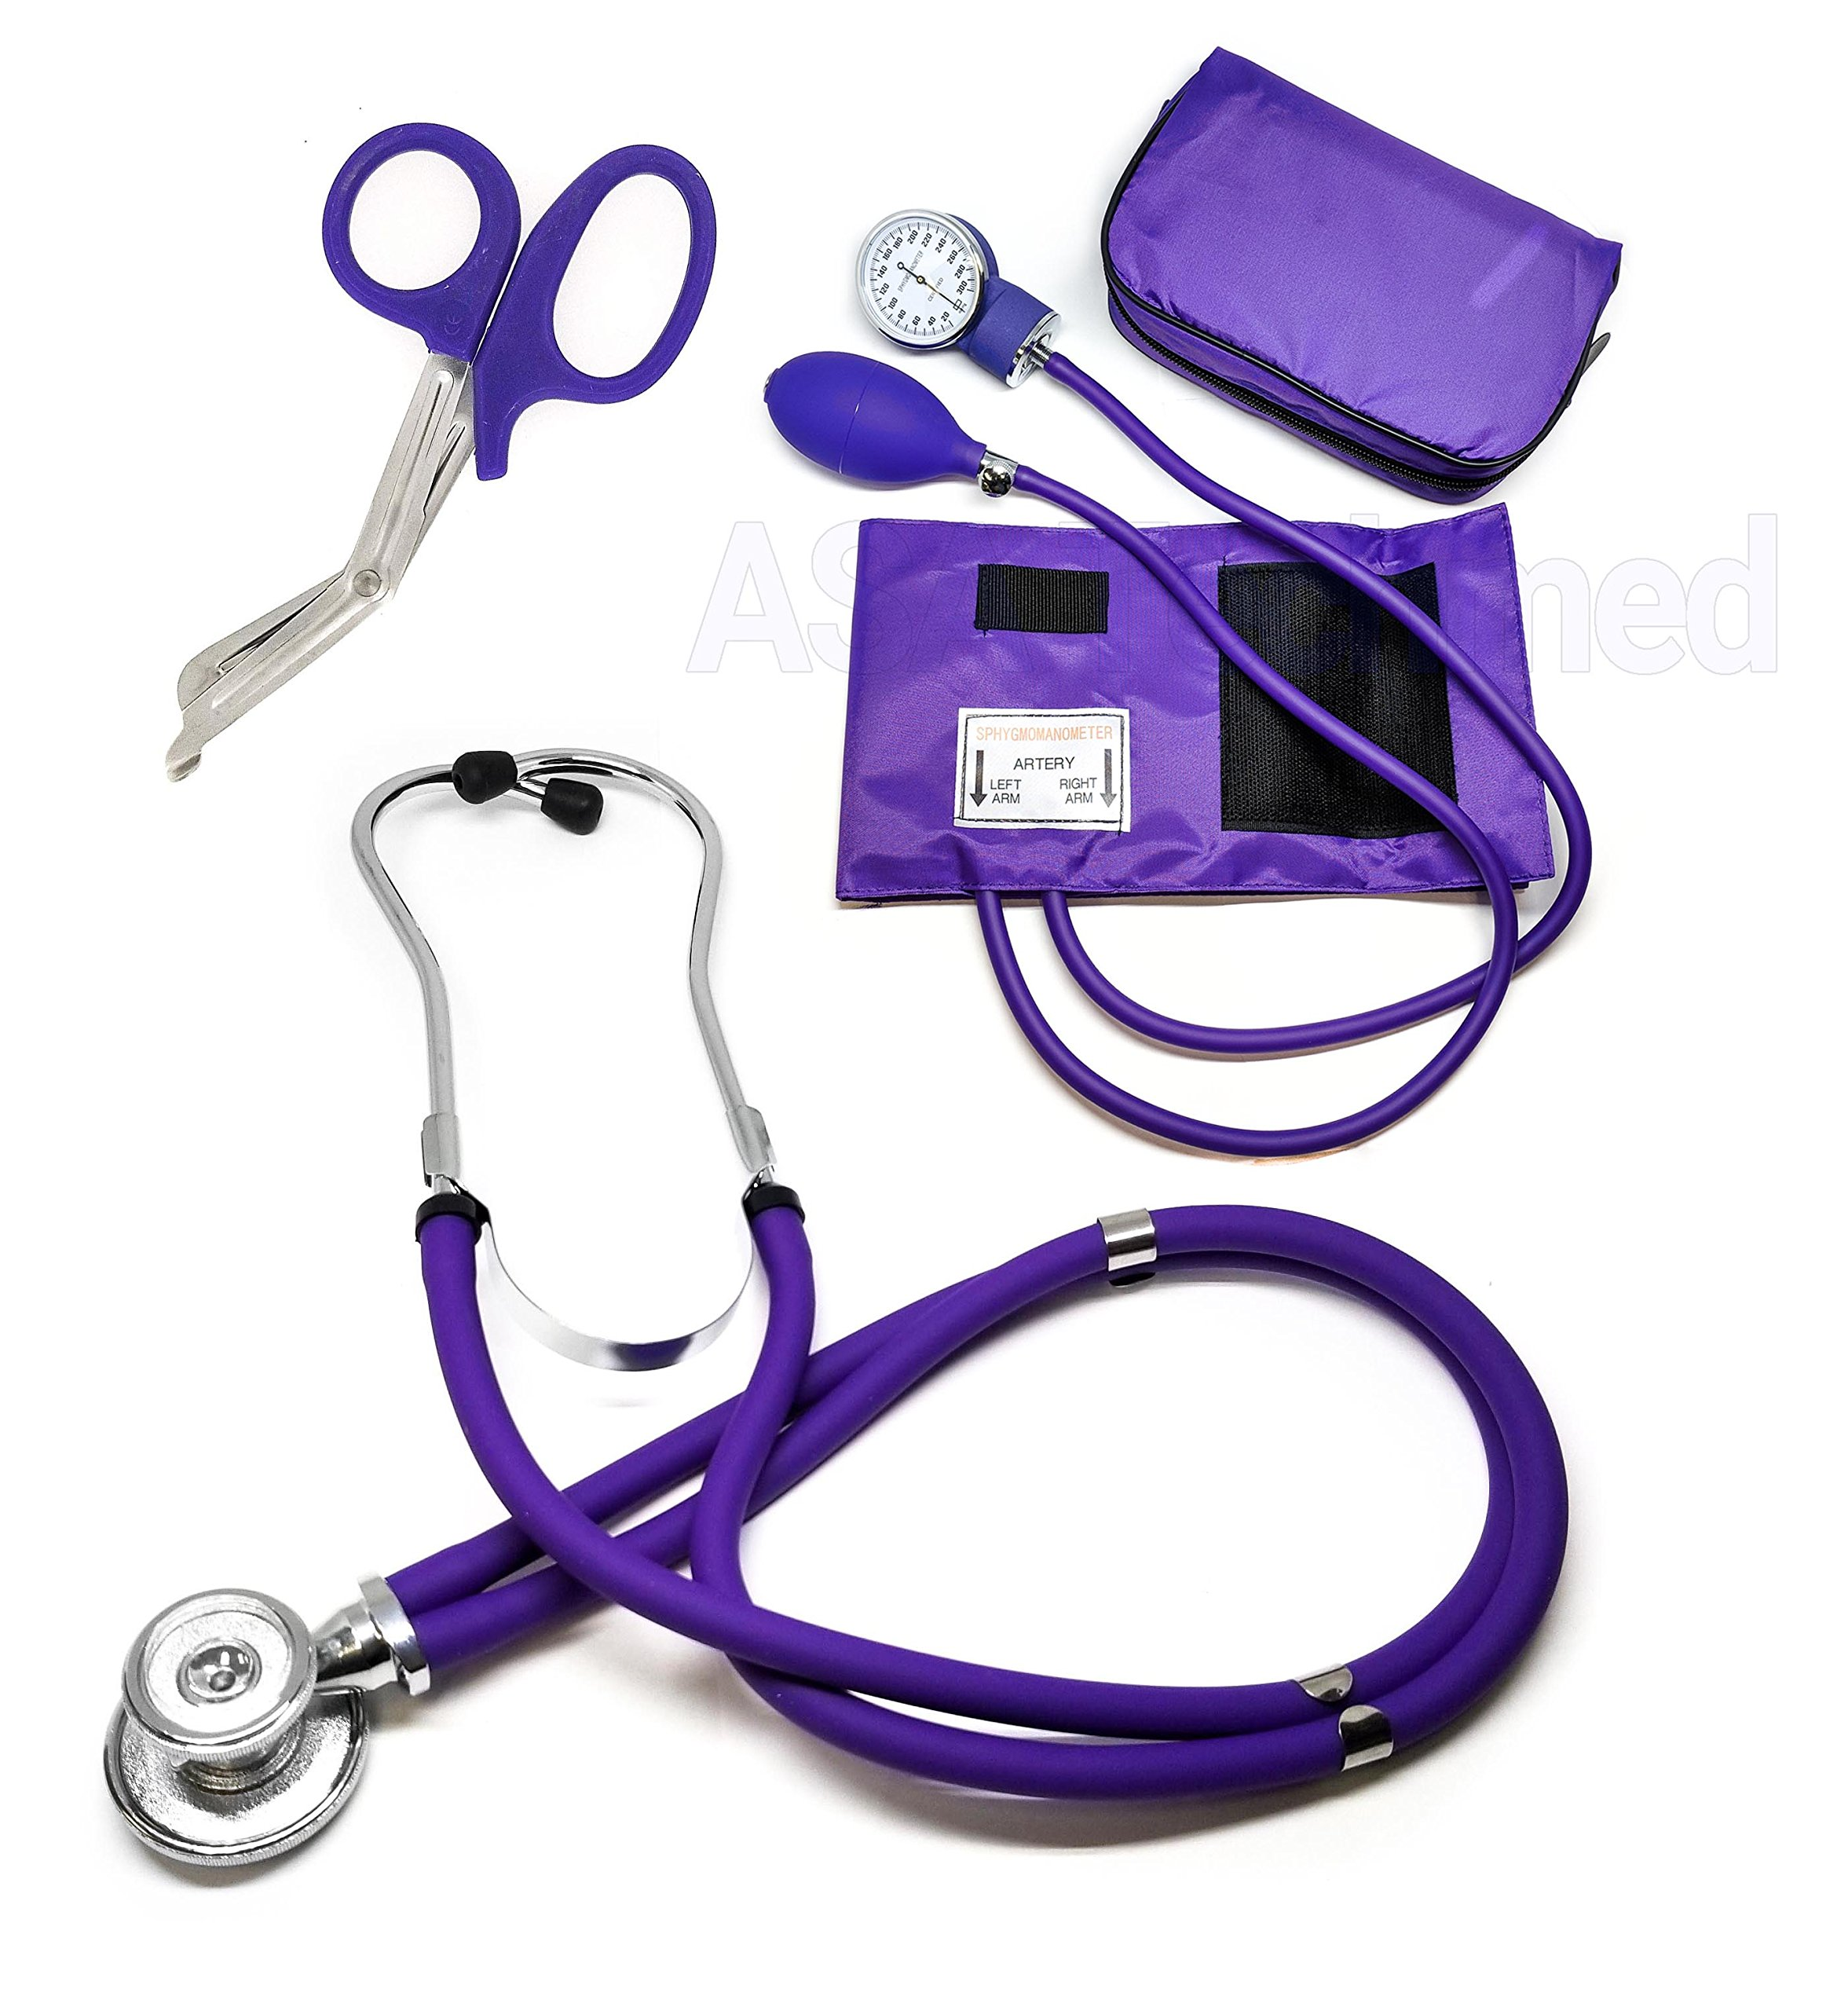 ASATechmed Nurse/EMT Starter Pack Stethoscope, Blood Pressure Monitor and Free Trauma 7.5'' EMT Shear Ideal Gift for Nurse, EMT, Medical Students, Firefighter, Police and Personal Use (Purple)